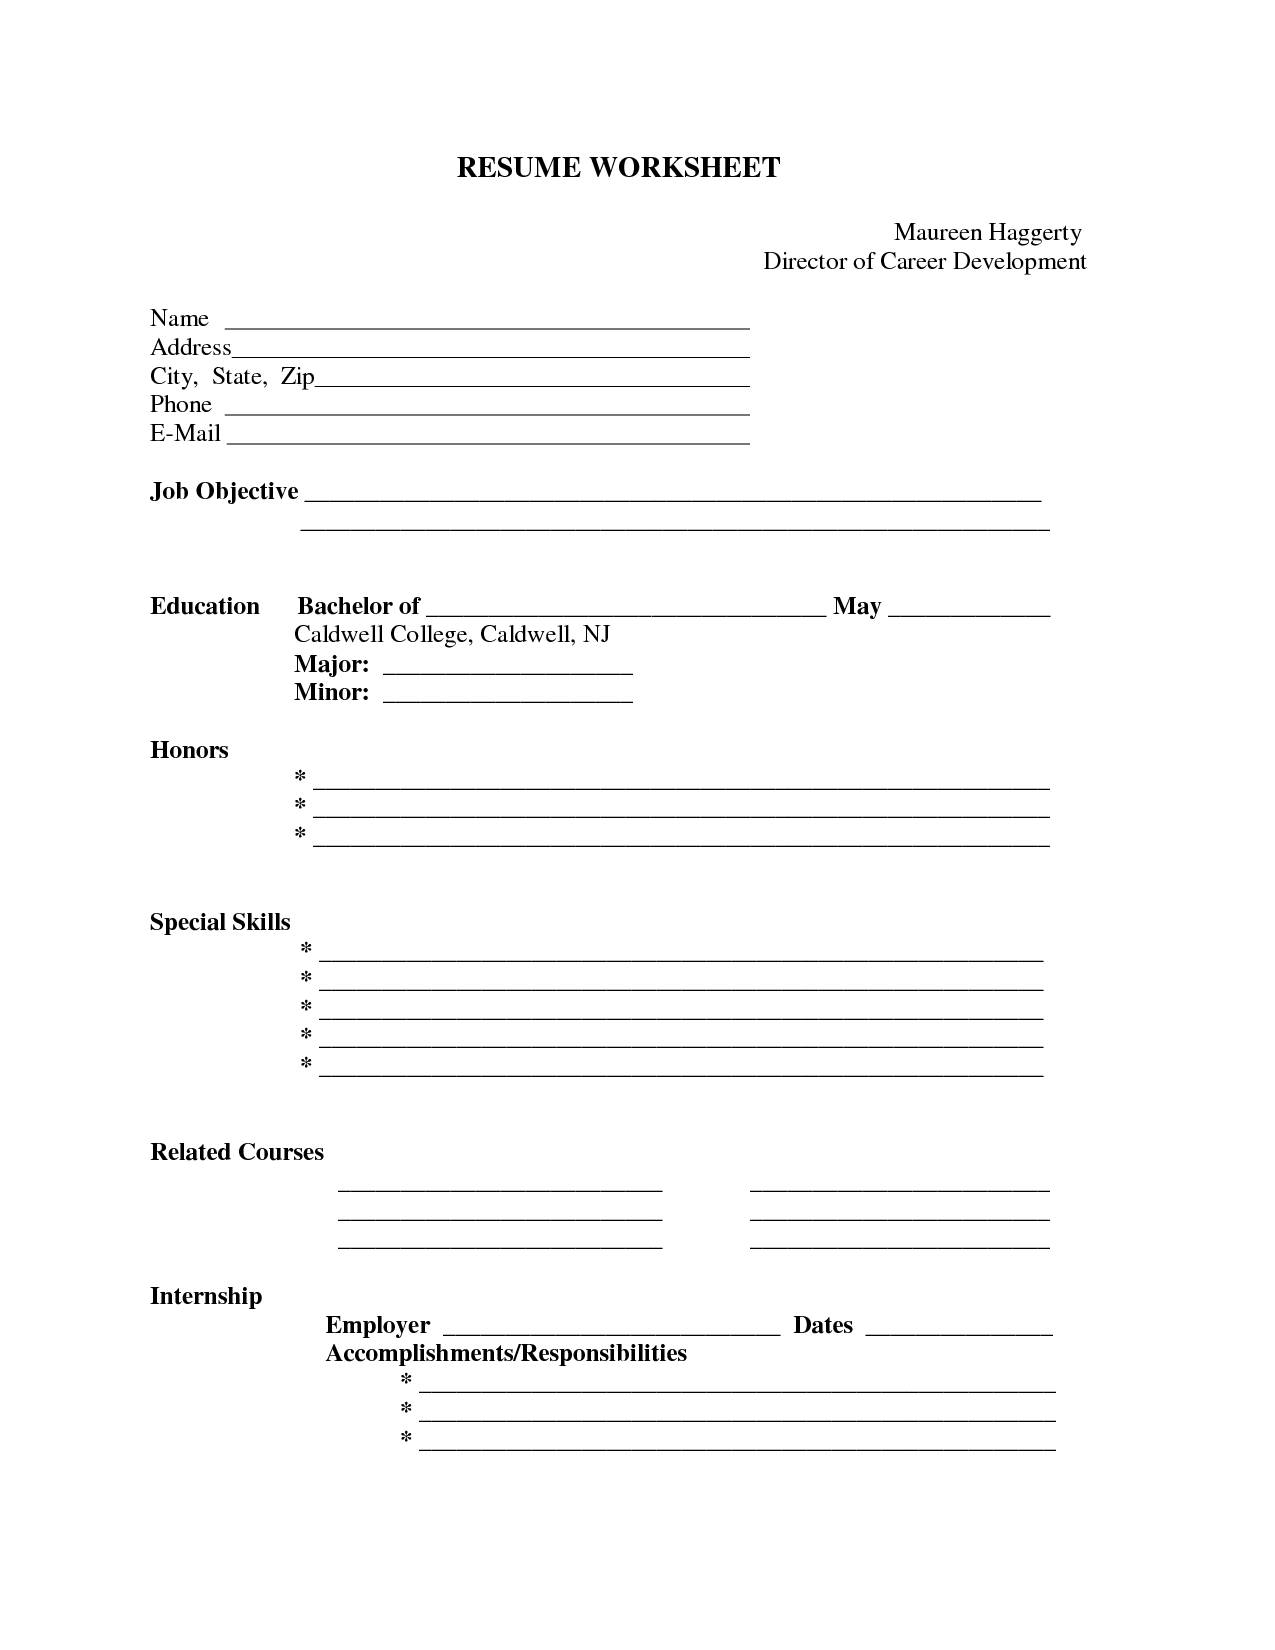 Blank Worksheet Templates For Teacher